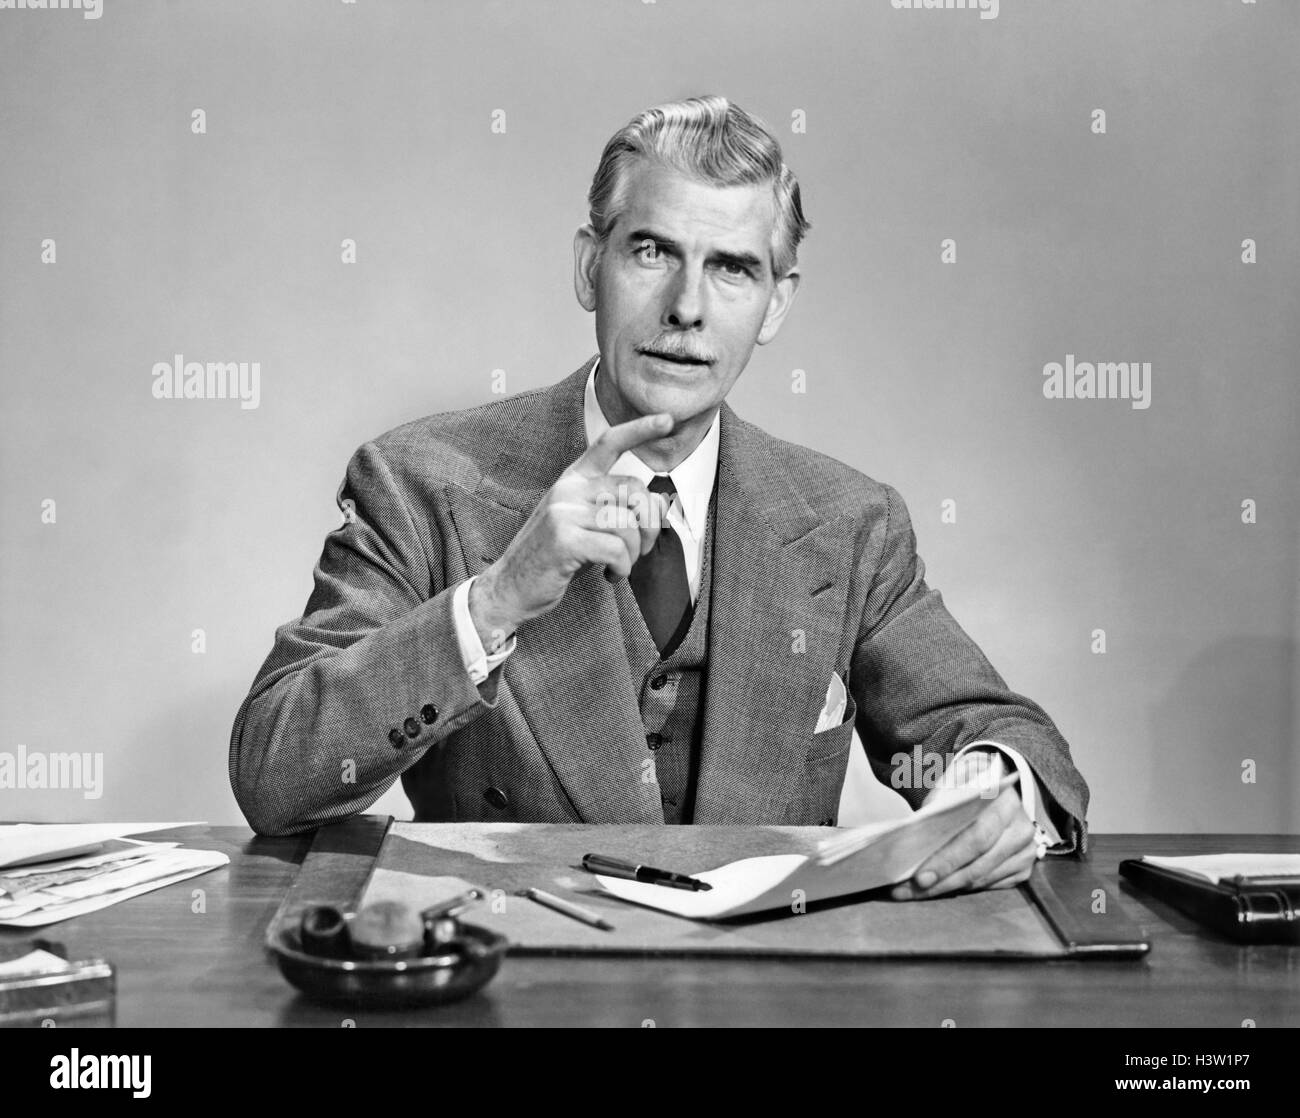 1950s SENIOR GRAY HAIRED BUSINESS EXECUTIVE WITH MUSTACHE SEATED AT DESK HOLDING PAPER GESTURING WITH FINGER LOOKING - Stock Image